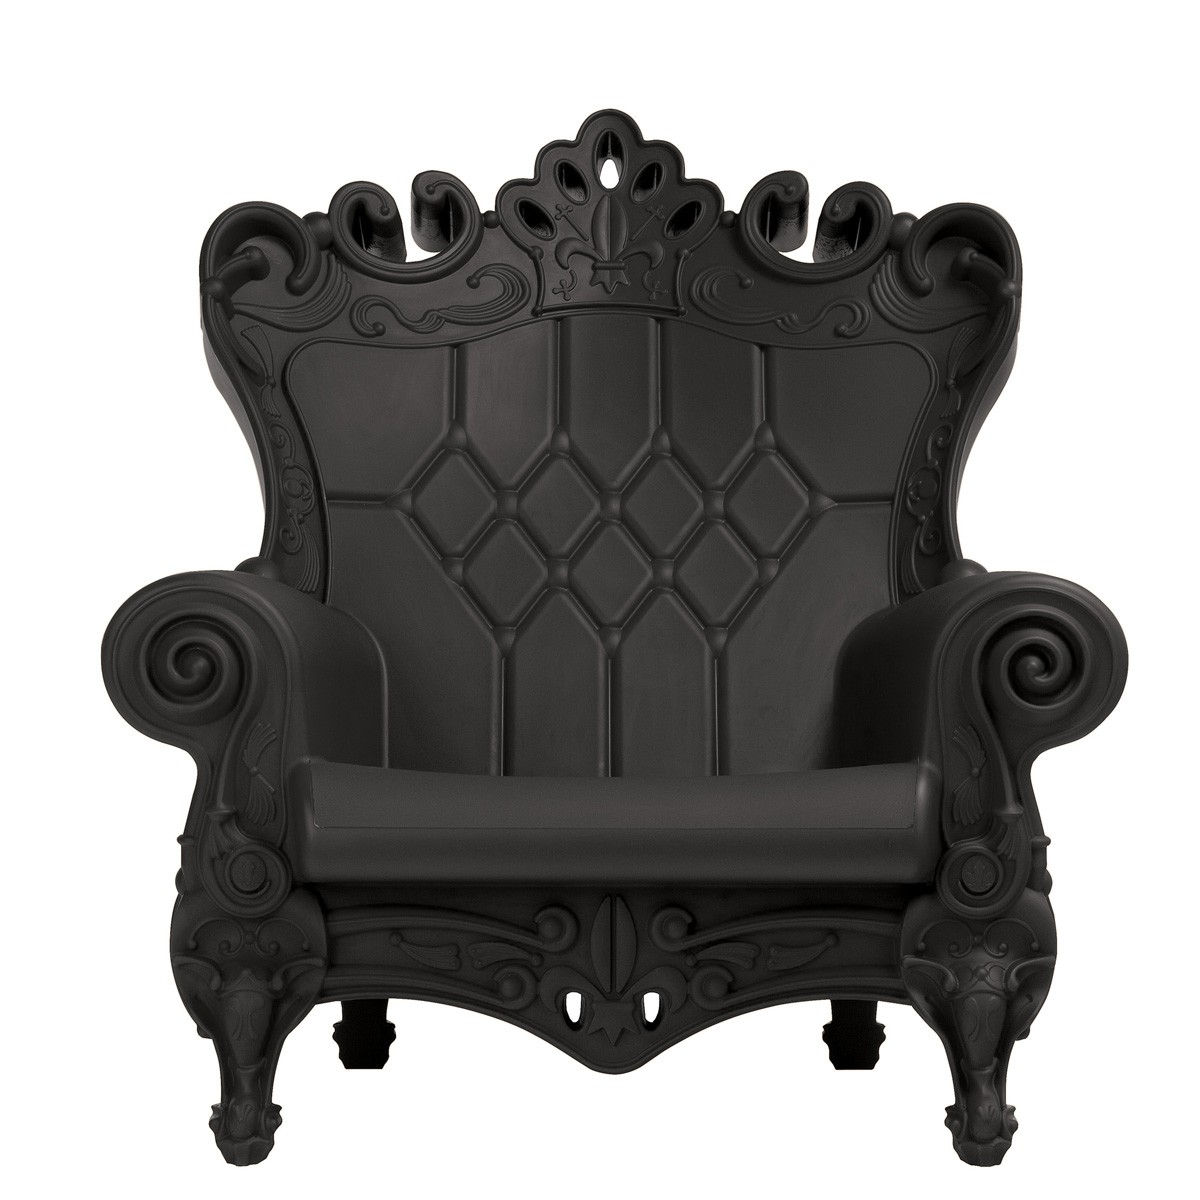 Little Queen of Love lounge chair from Slide